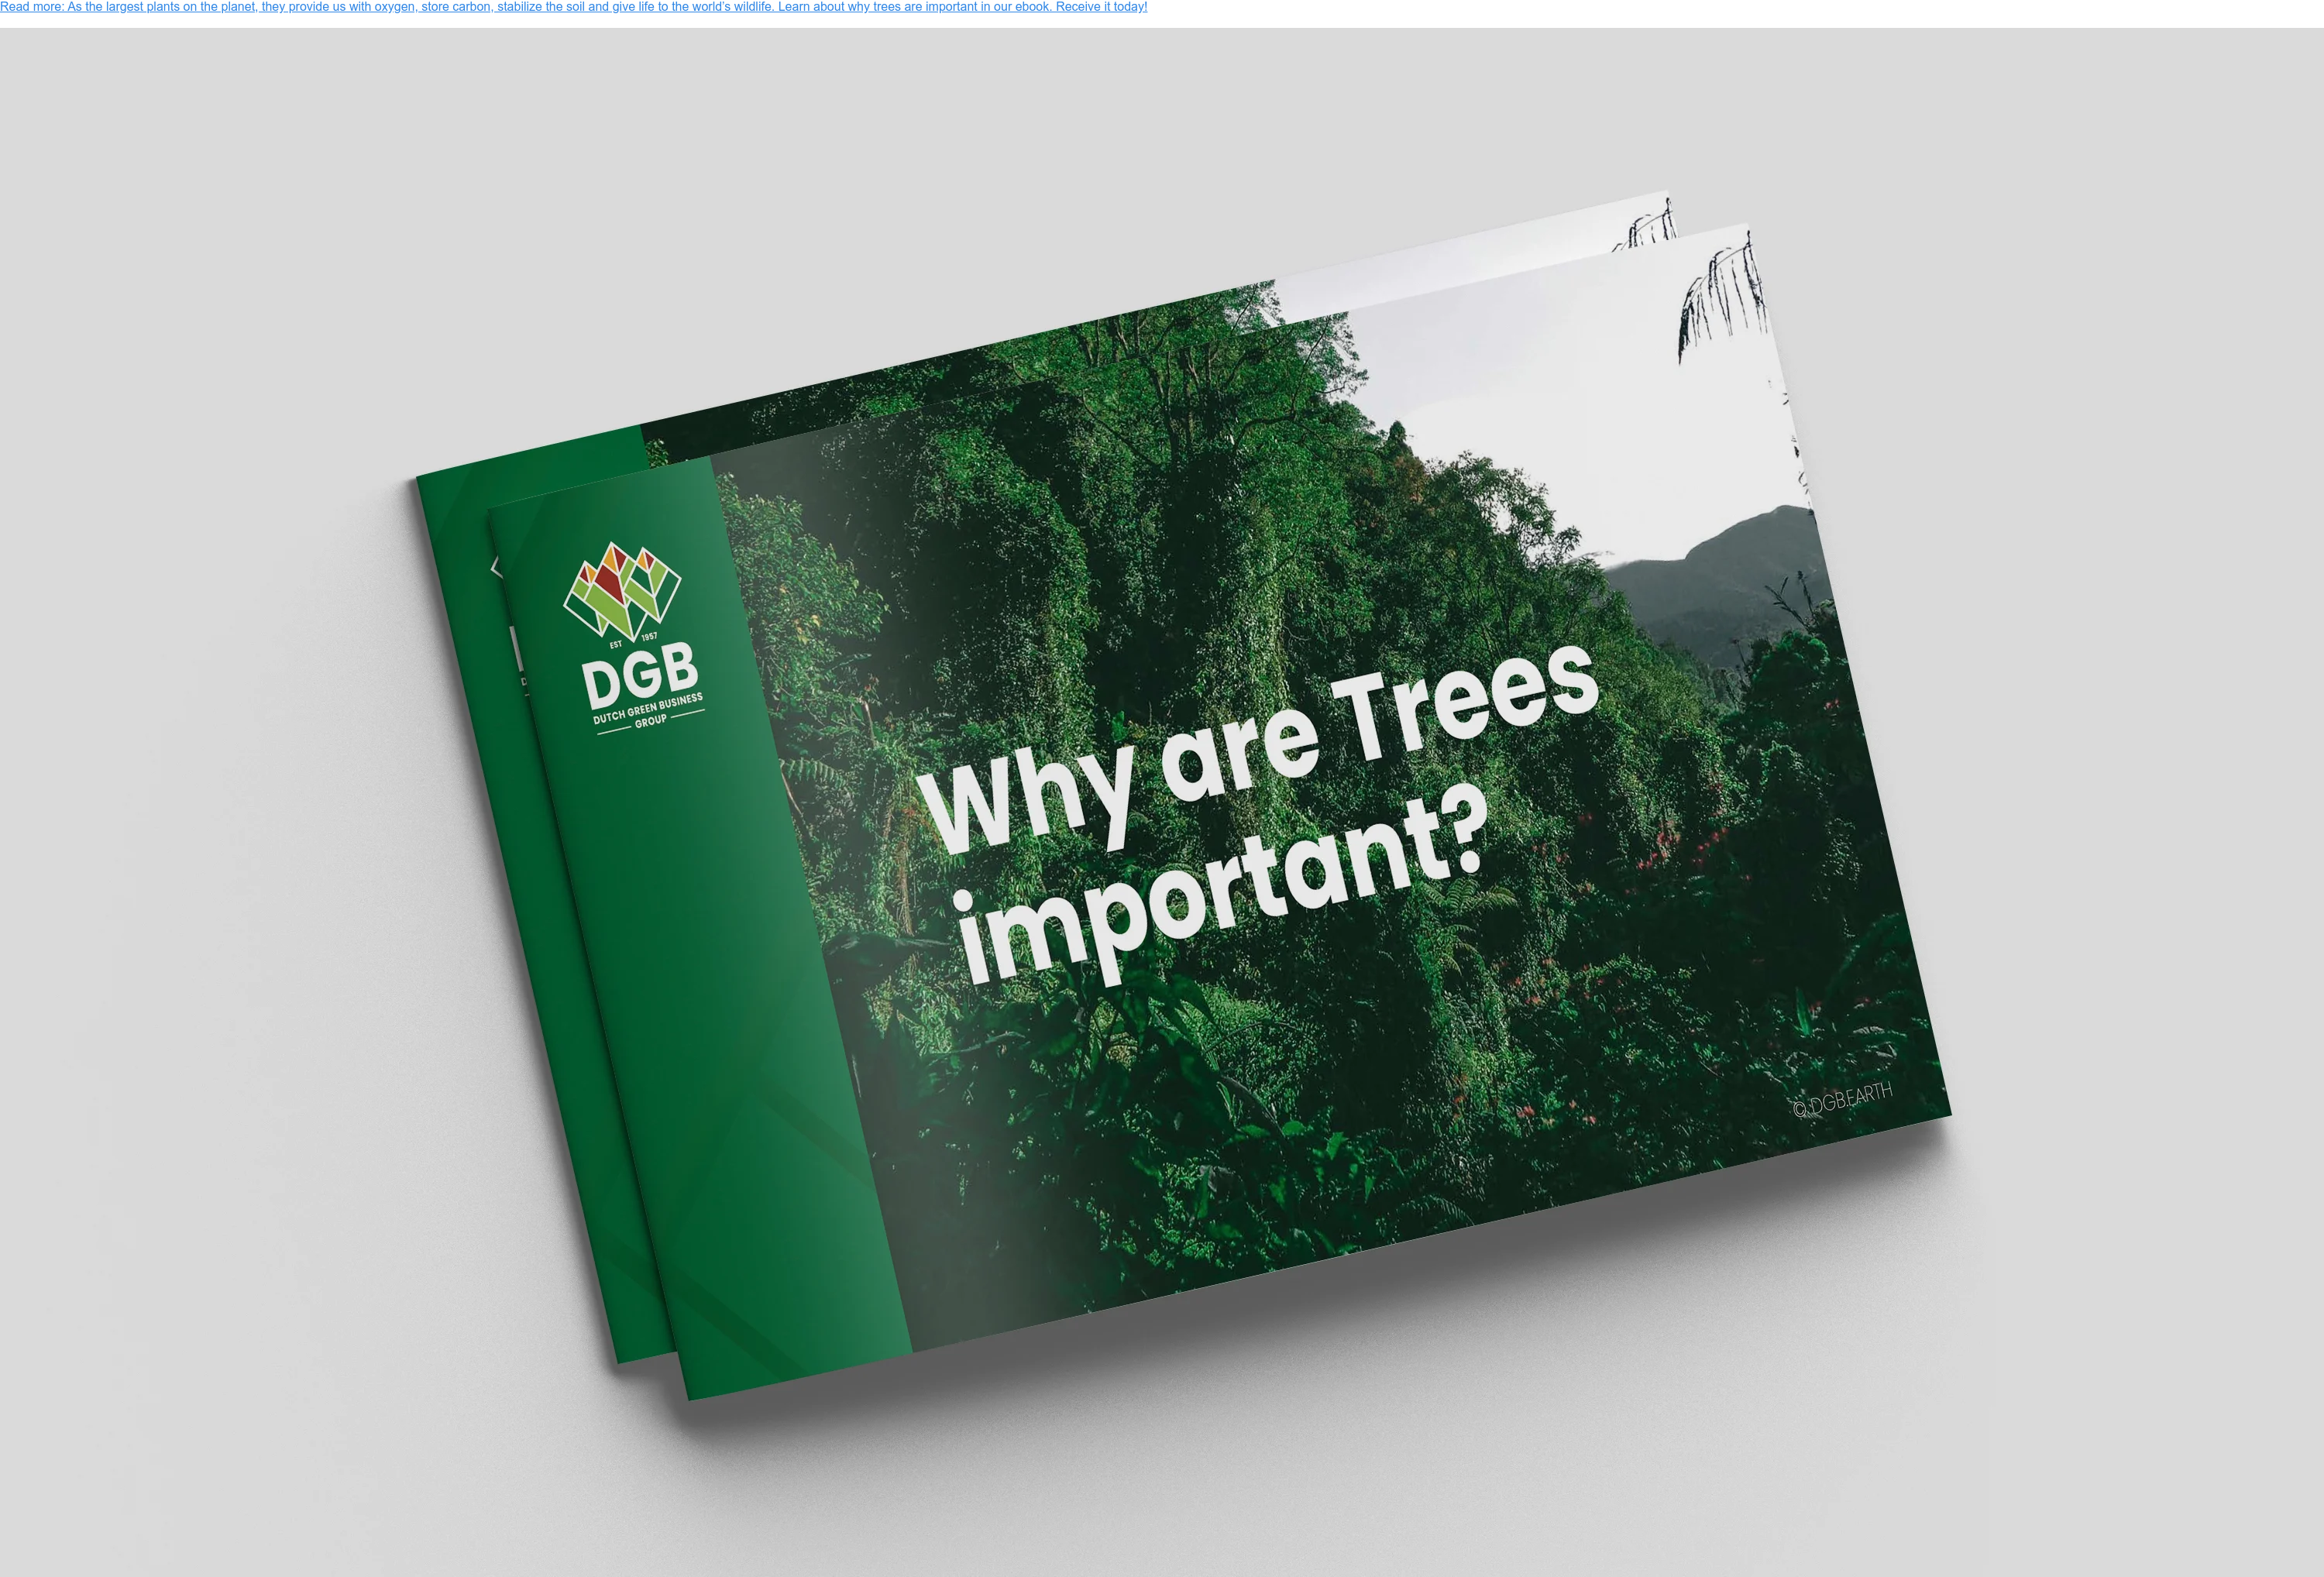 Read more: As the largest plants on the planet, they provide us with oxygen,  store carbon, stabilize the soil and give life to the world's wildlife. Learn  about why trees are important in our ebook. Receive it today!